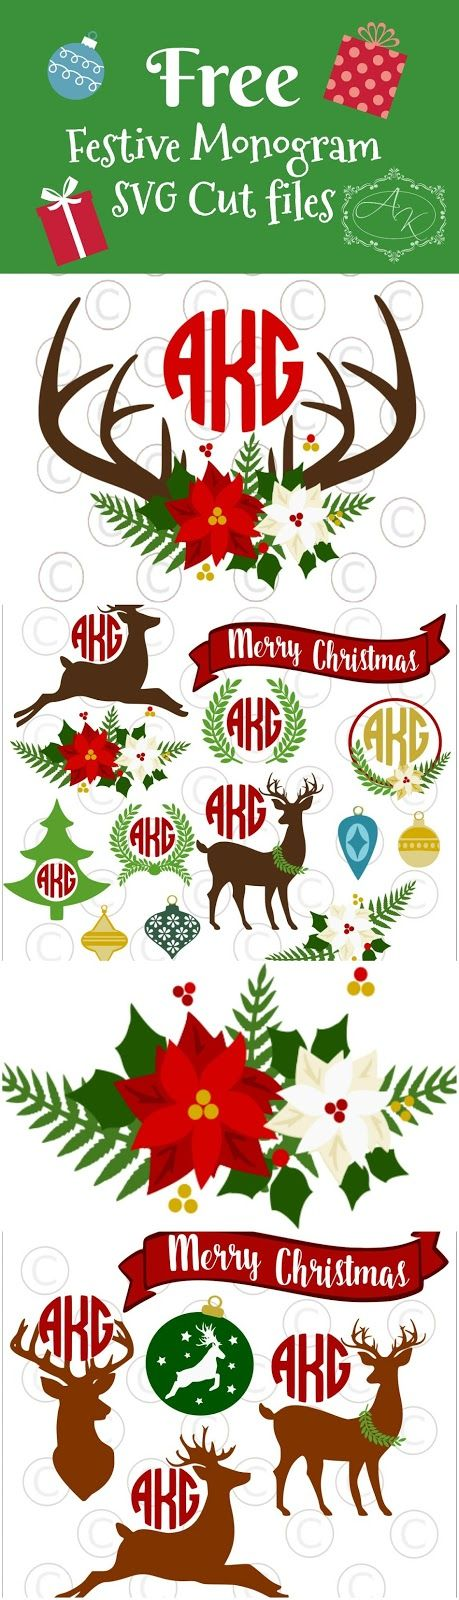 Free circle monogram SVG cut files. Christmas Svgs. Deer